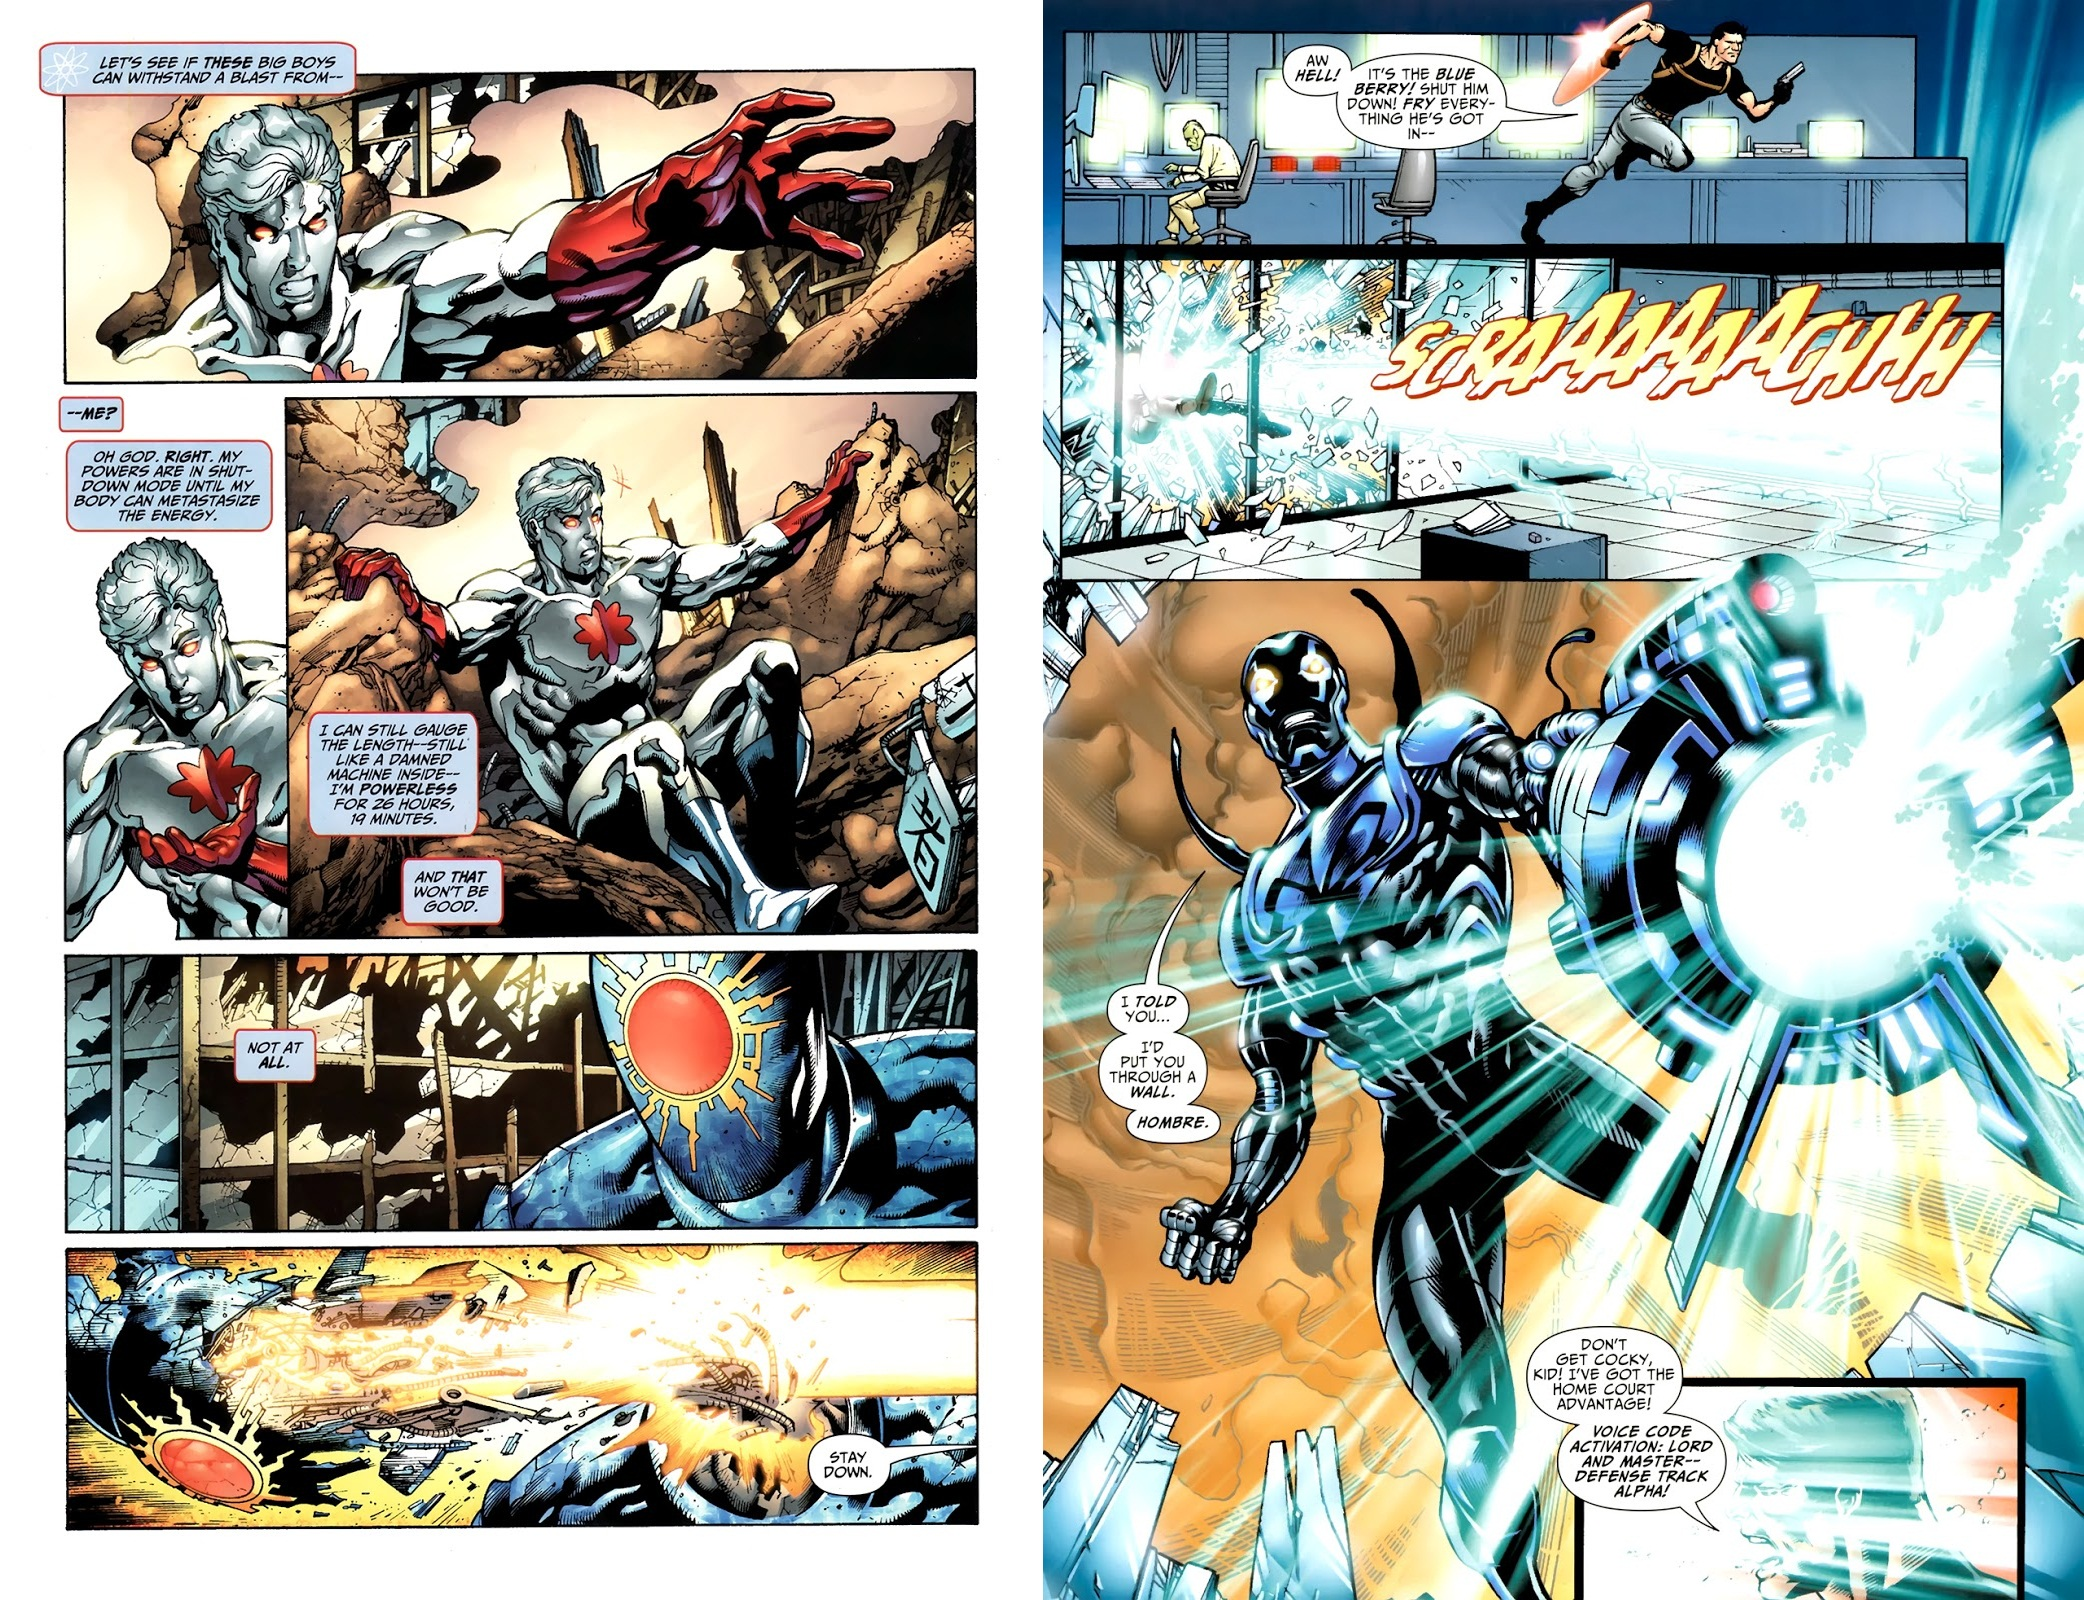 Justice League Generation Lost V2 review